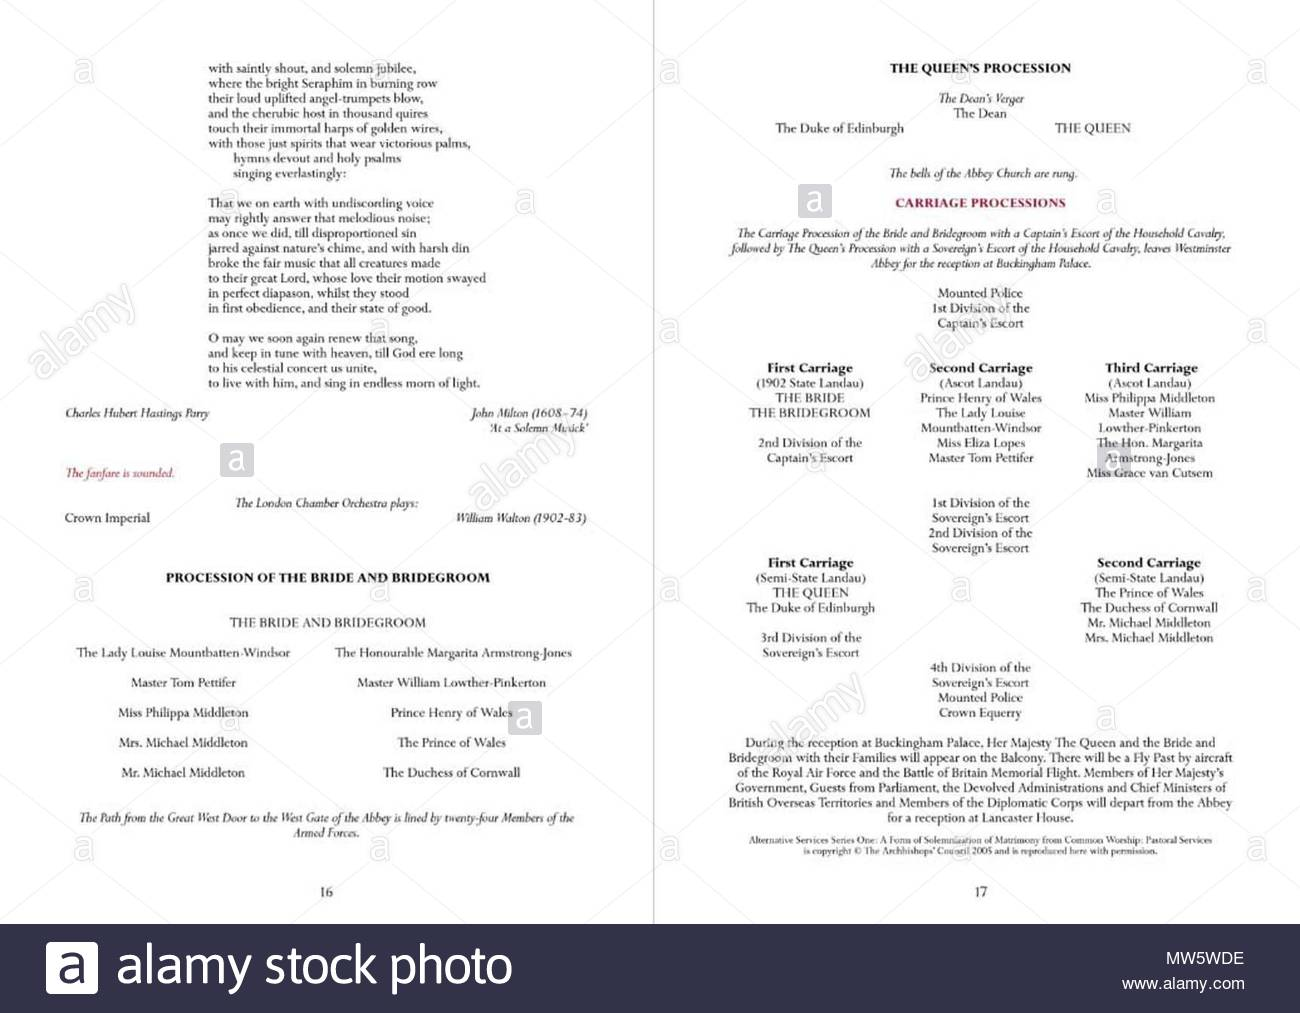 official order of service for the wedding of hrh prince william and